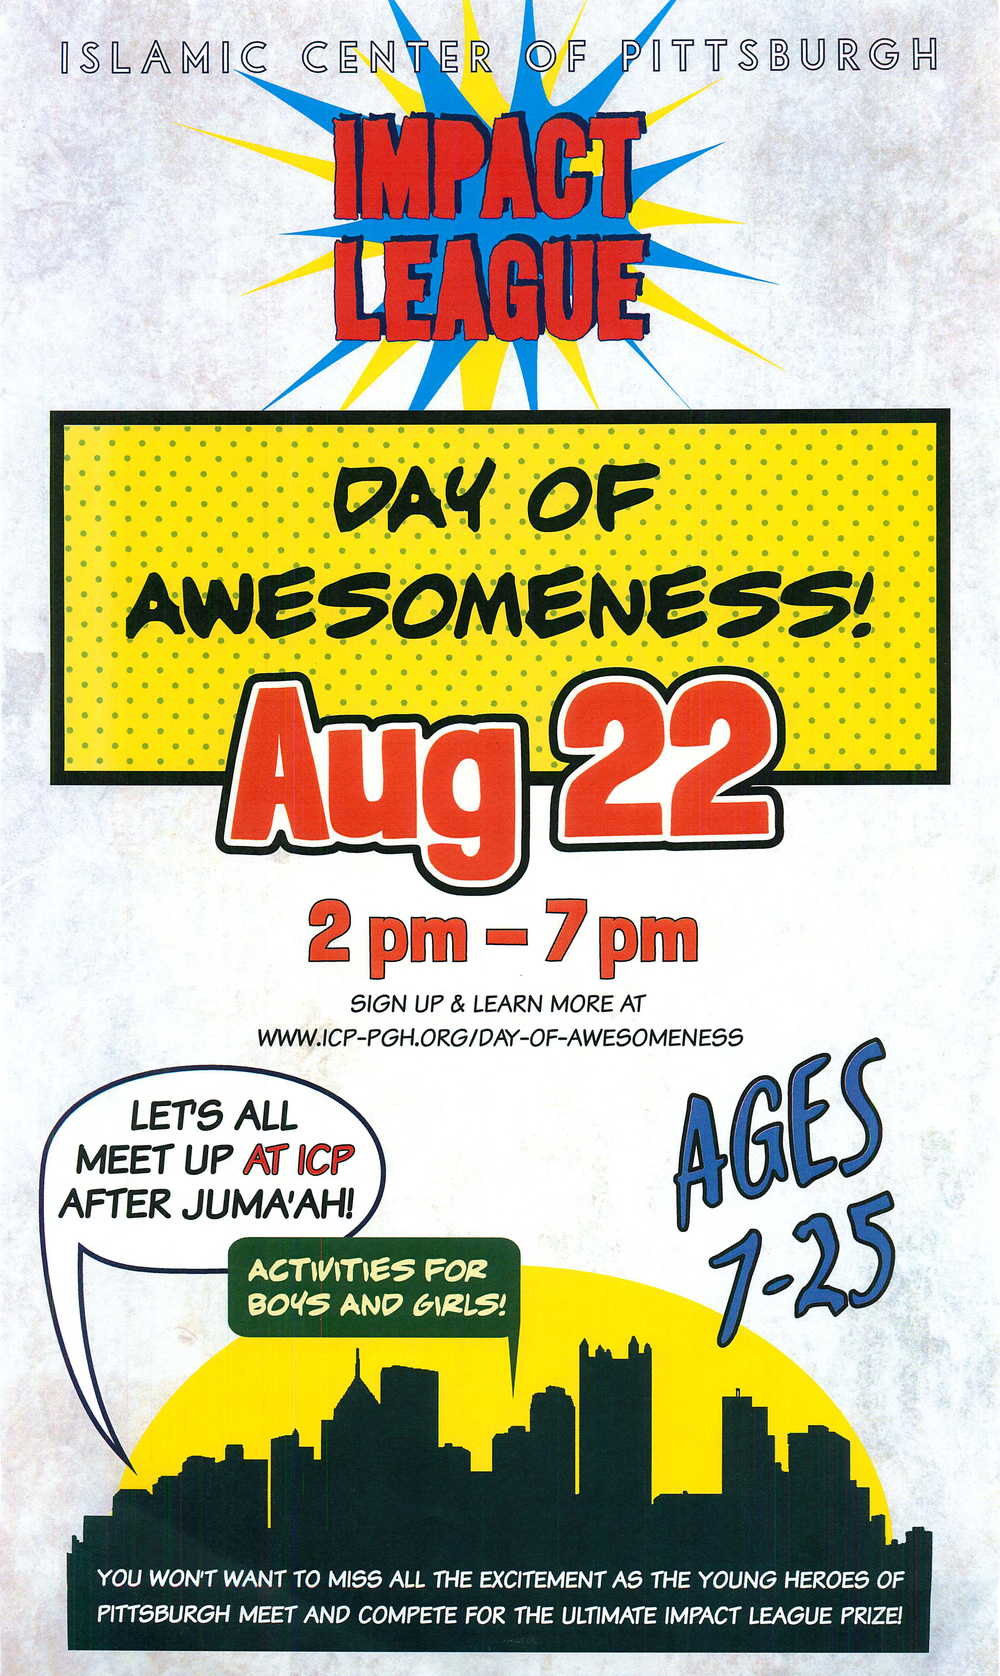 Promotional poster for a comic-book-themed youth even at the Islamic Center of Pittsburgh